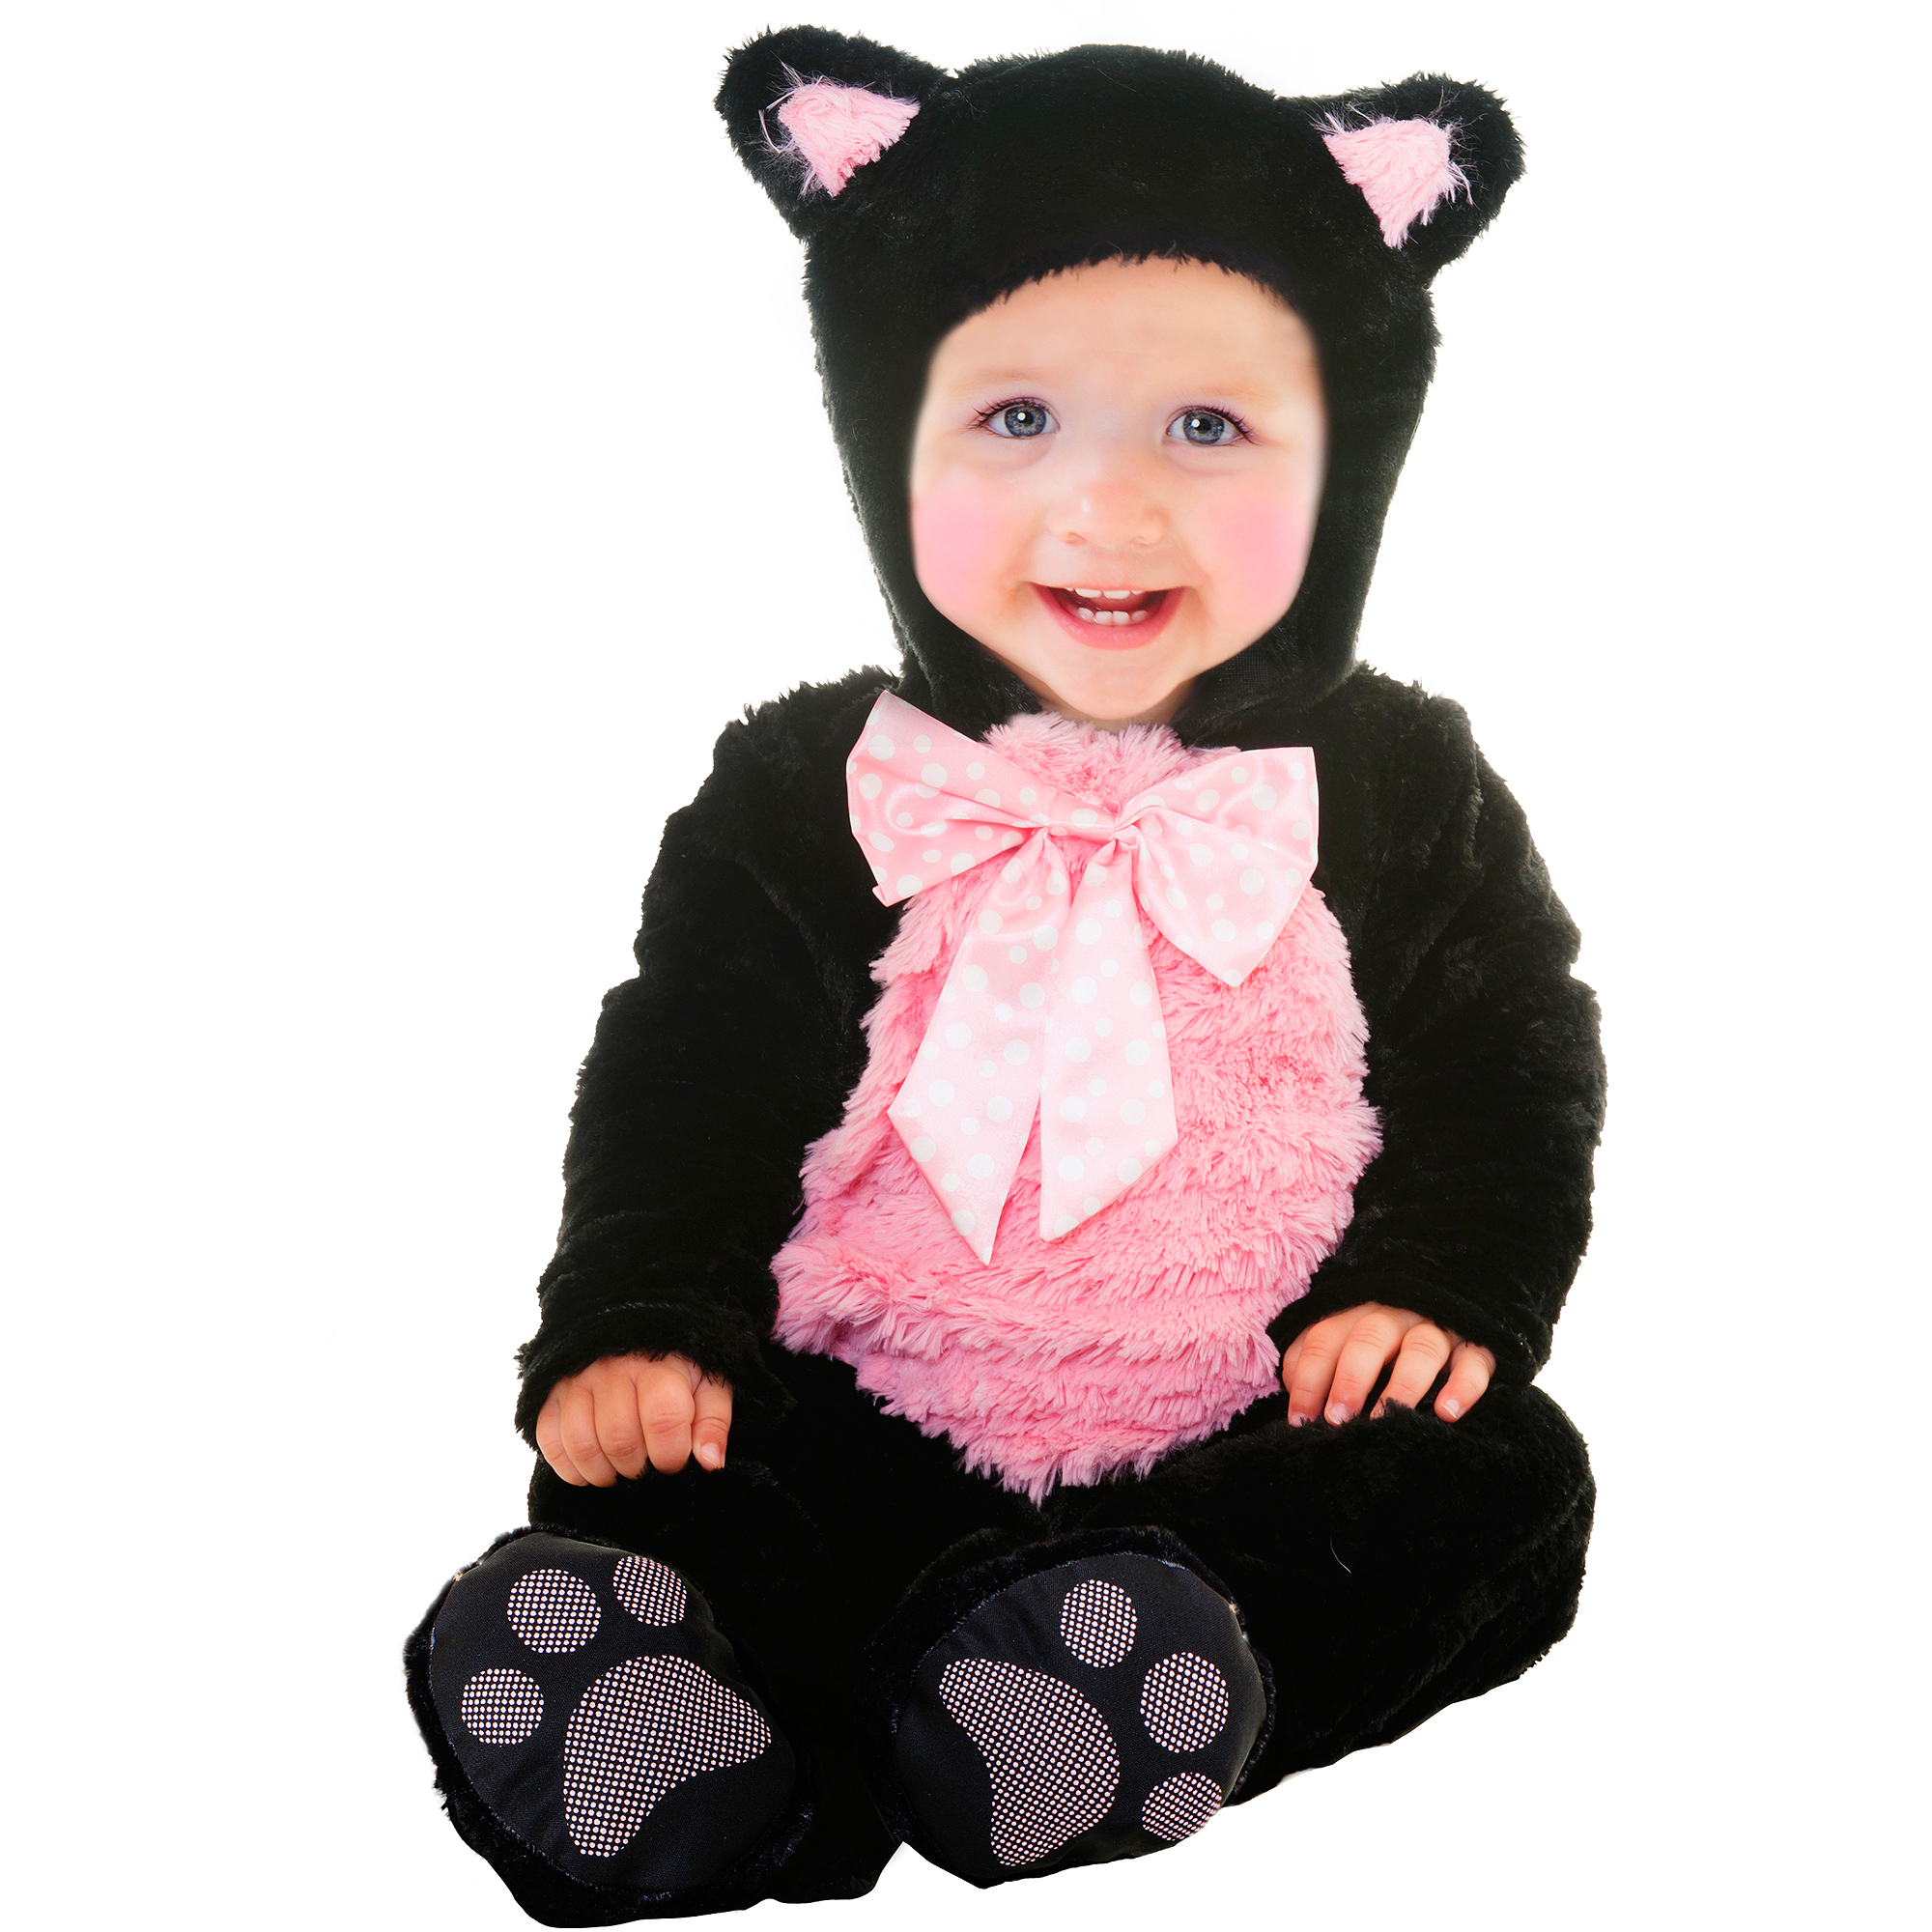 sc 1 st  Walmart & Kitty Cat Cutie Infant Halloween Costume - Walmart.com